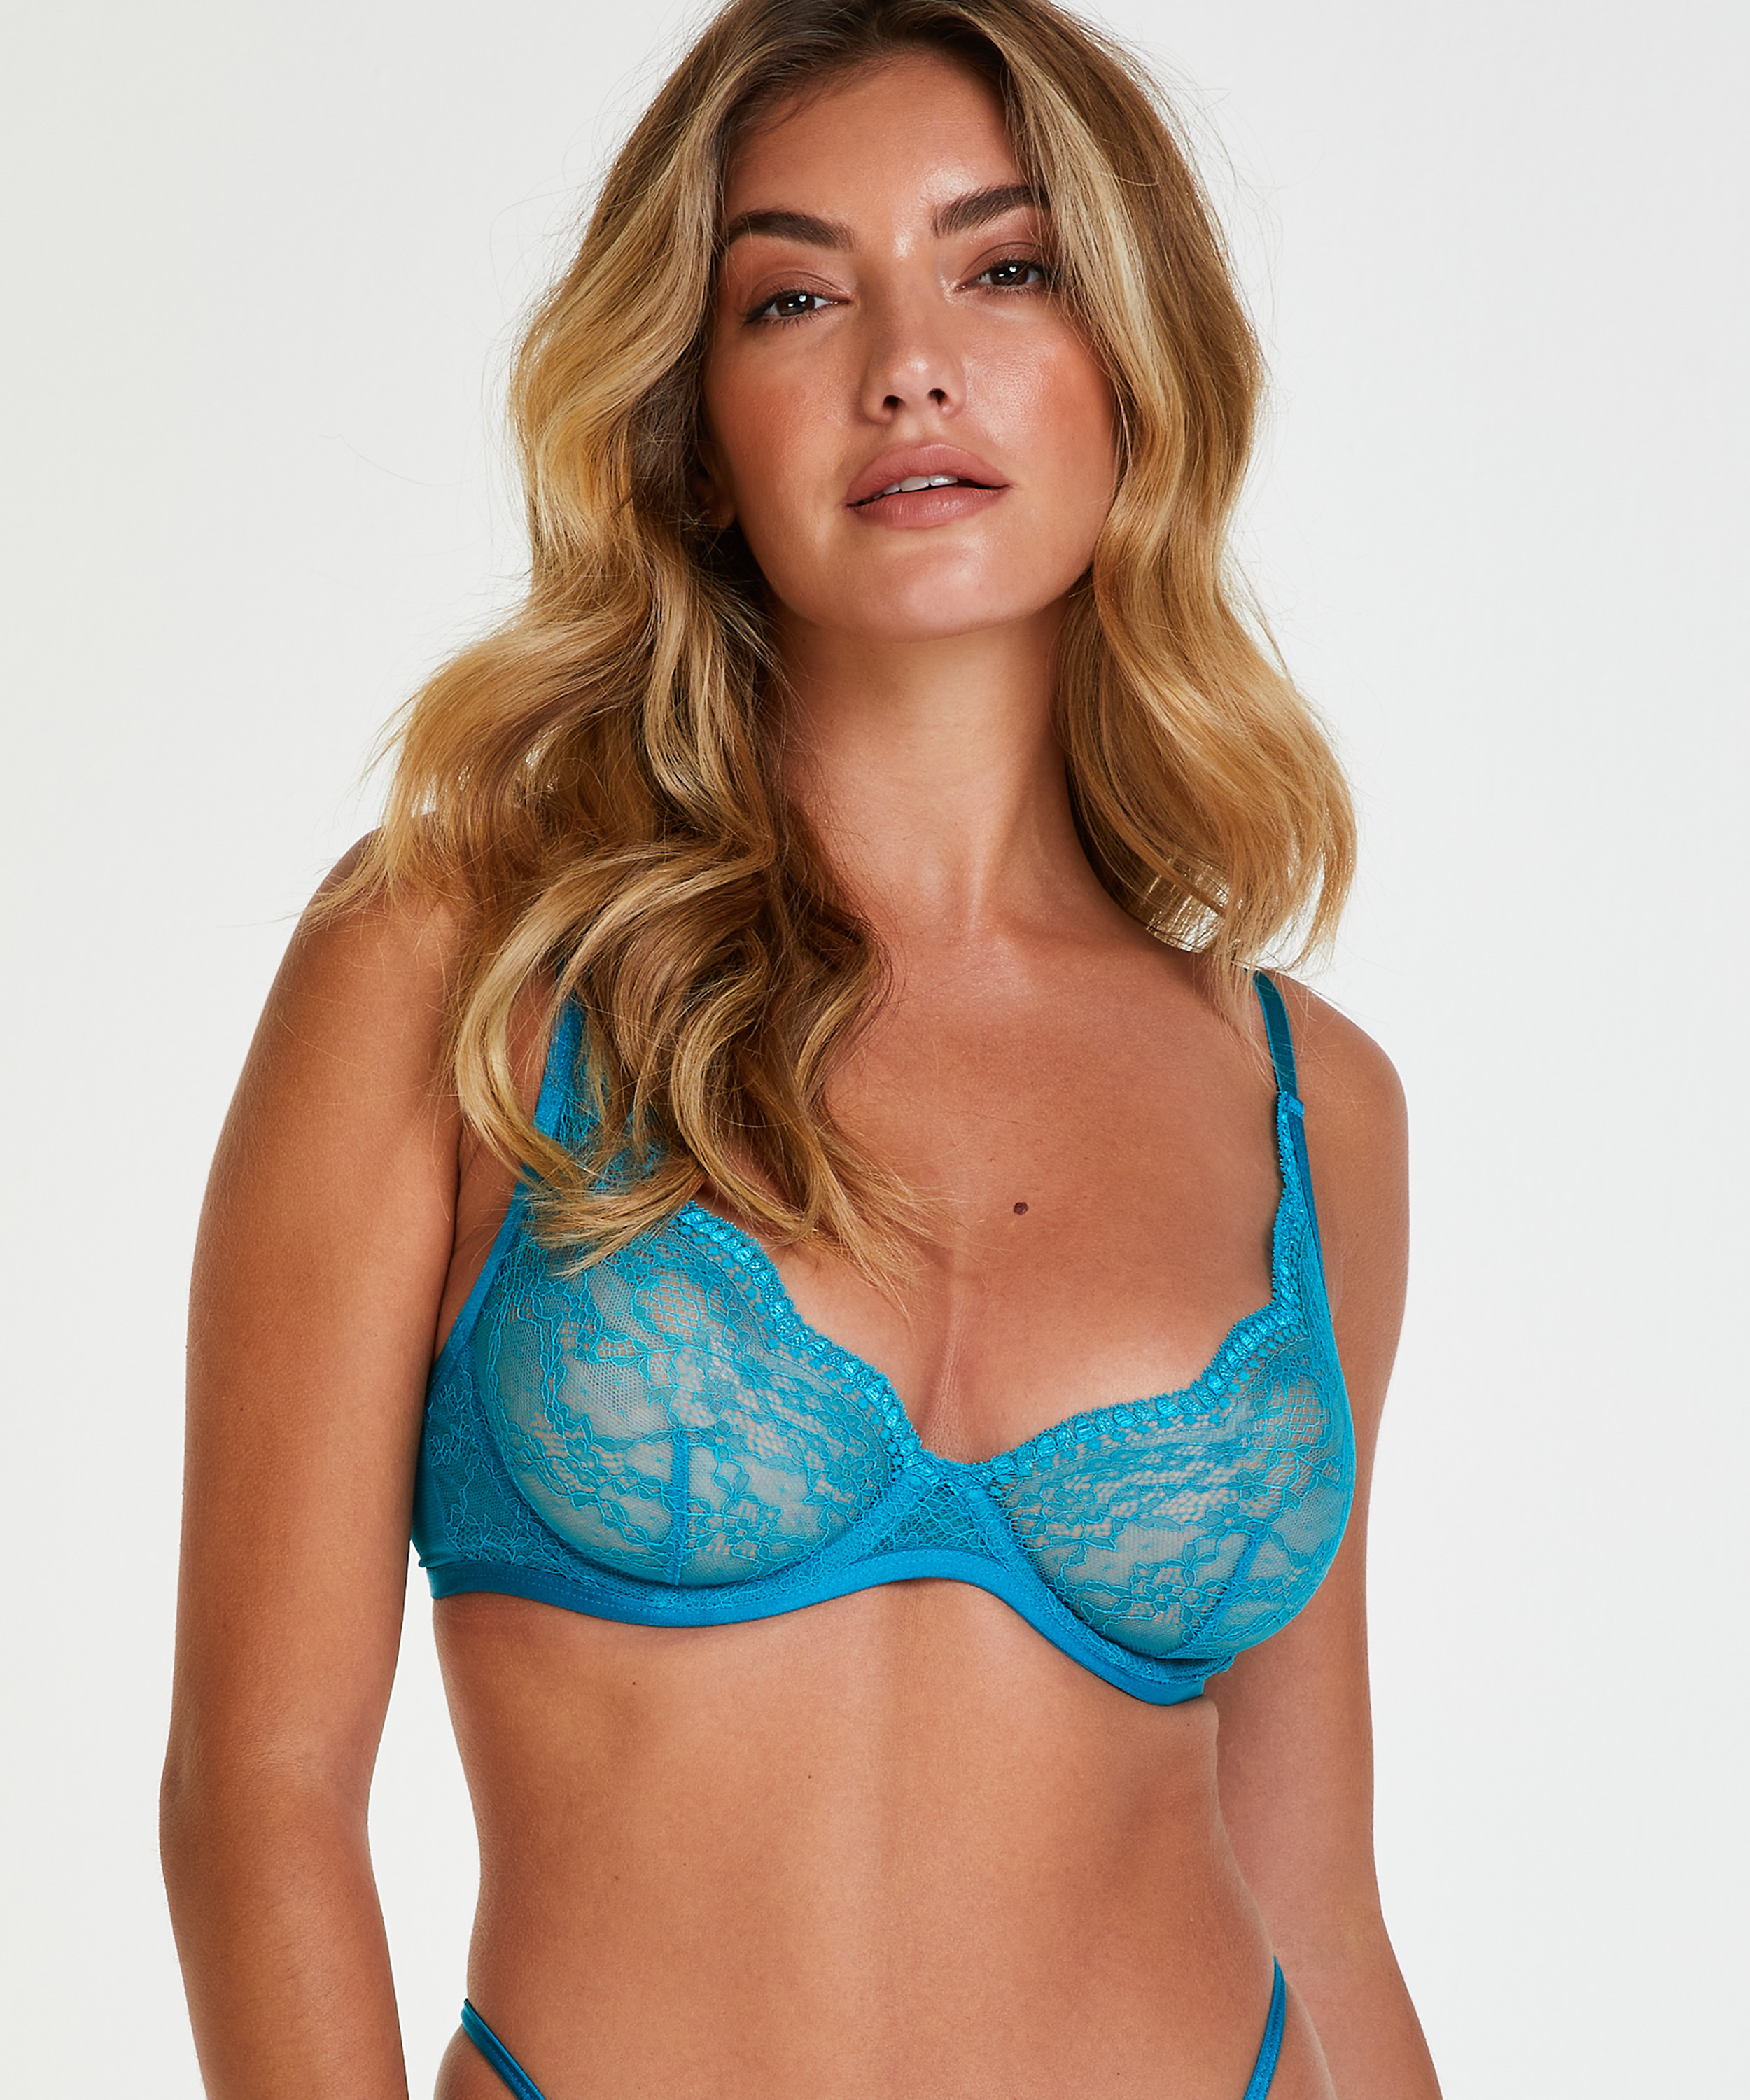 Isabelle Non-Padded Underwired Bra, Blue, main